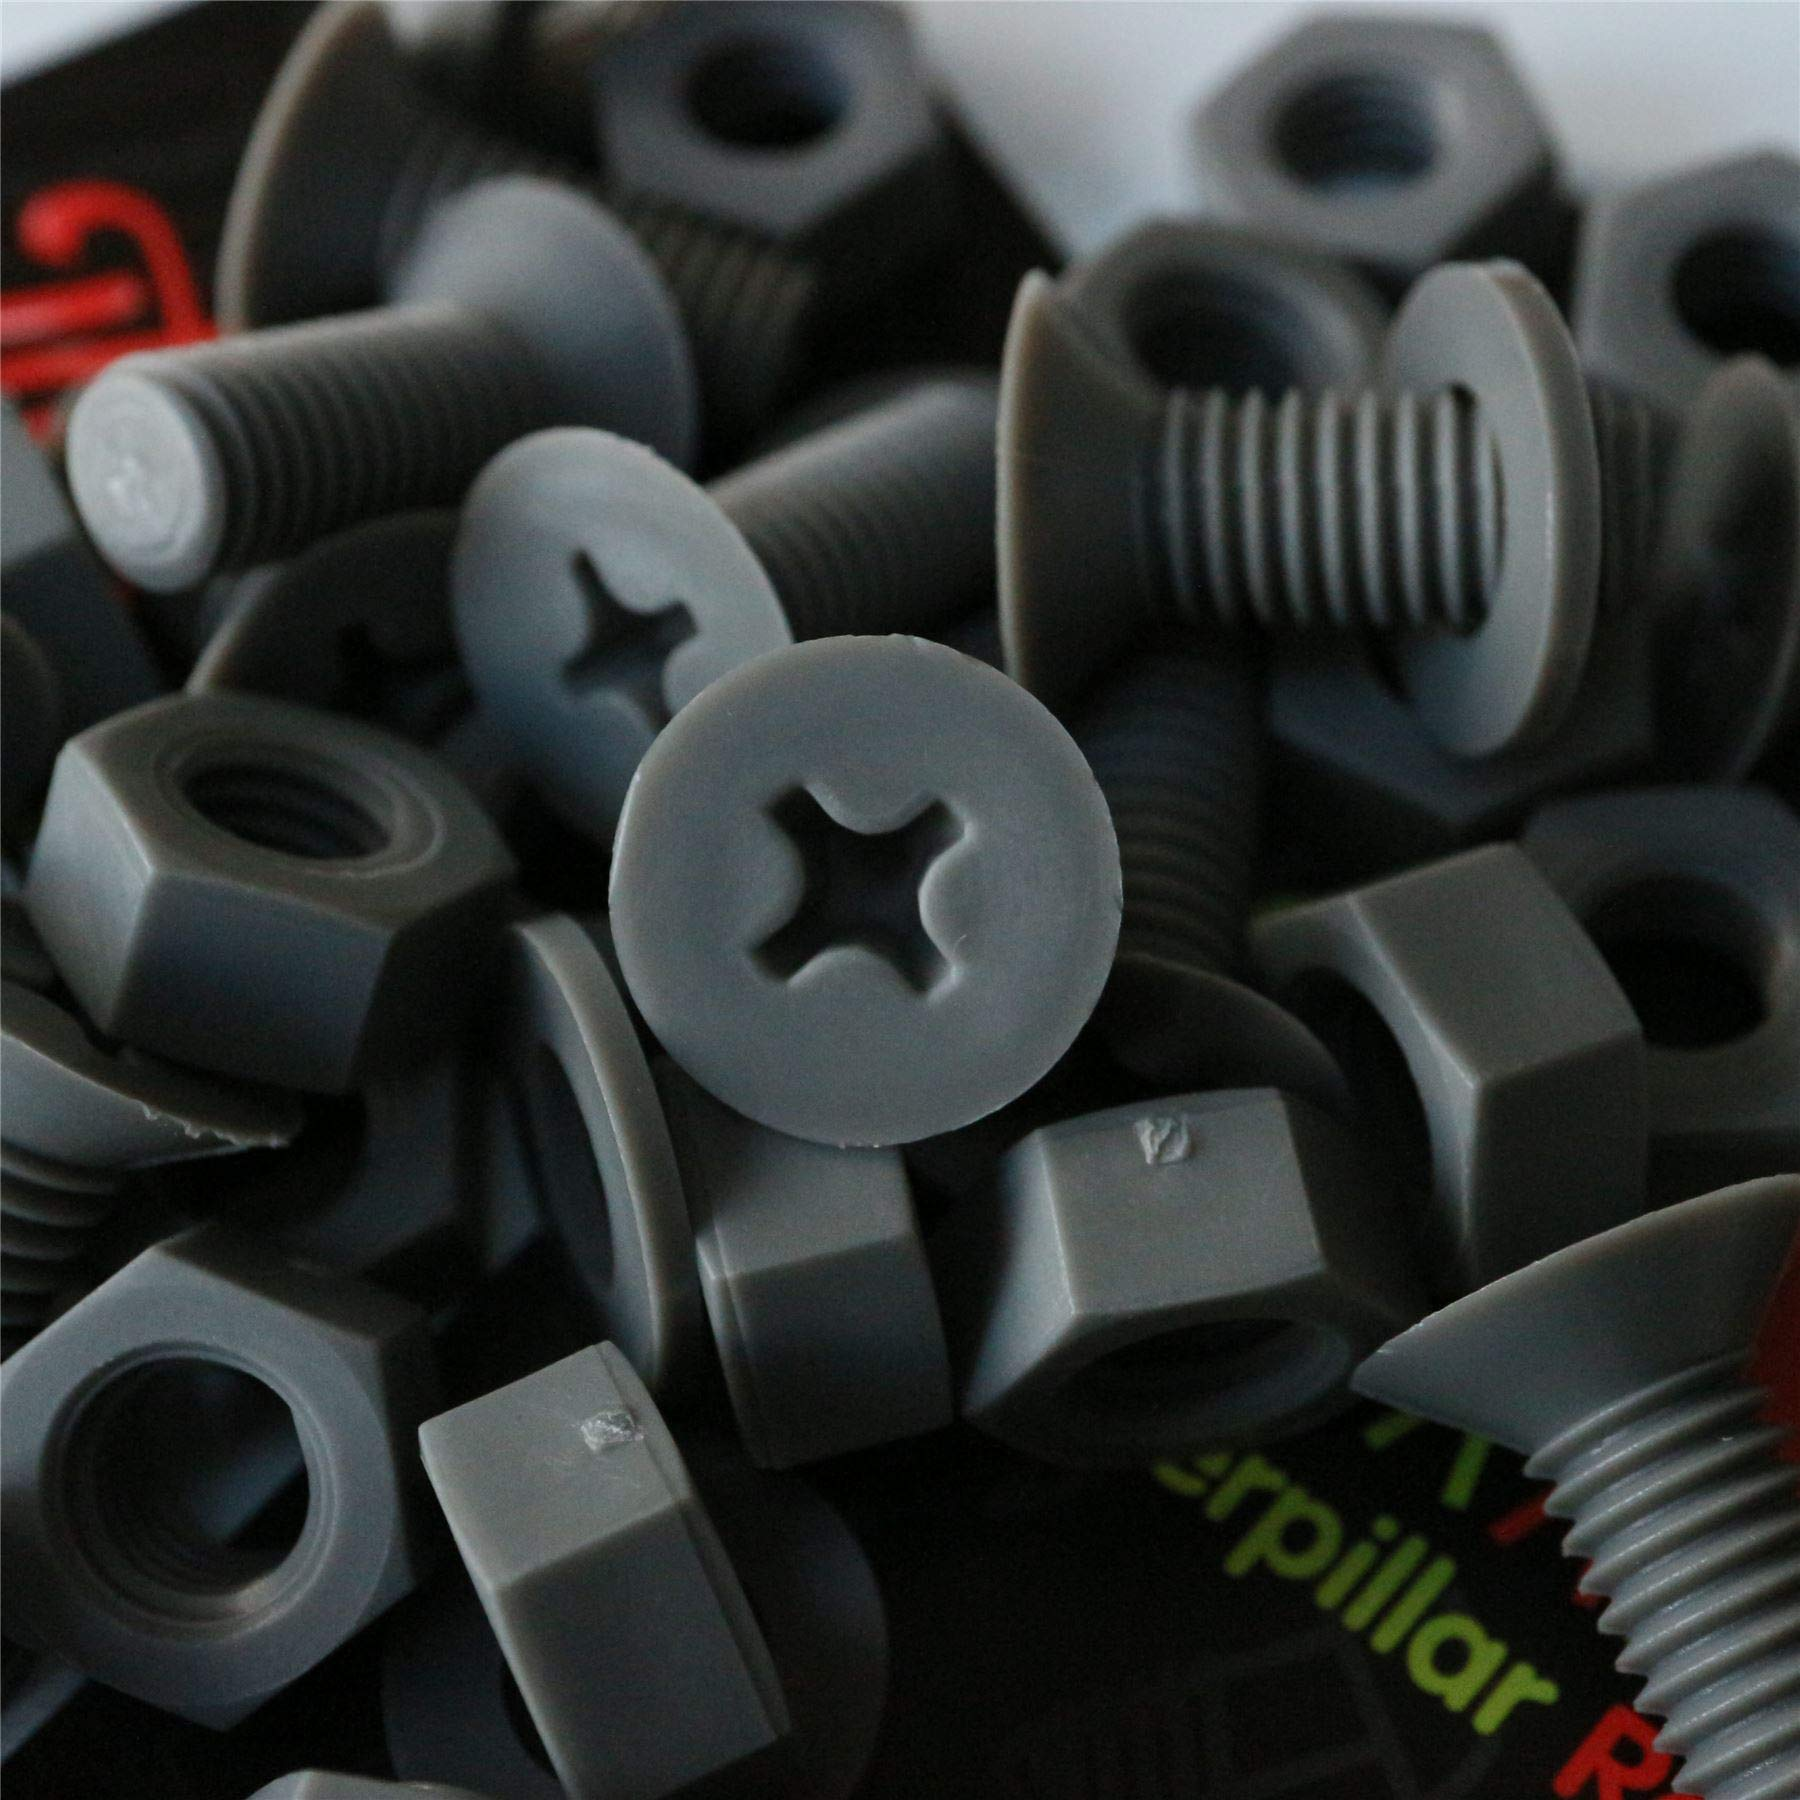 20 x Grey Countersunk Screws Polypropylene (PP) Plastic Nuts and Bolts, Washers, M8 x 20mm, Acrylic, Water Resistant, Anti-Corrosion, Chemical Resistant, Gray. 5/16 x 25/32''